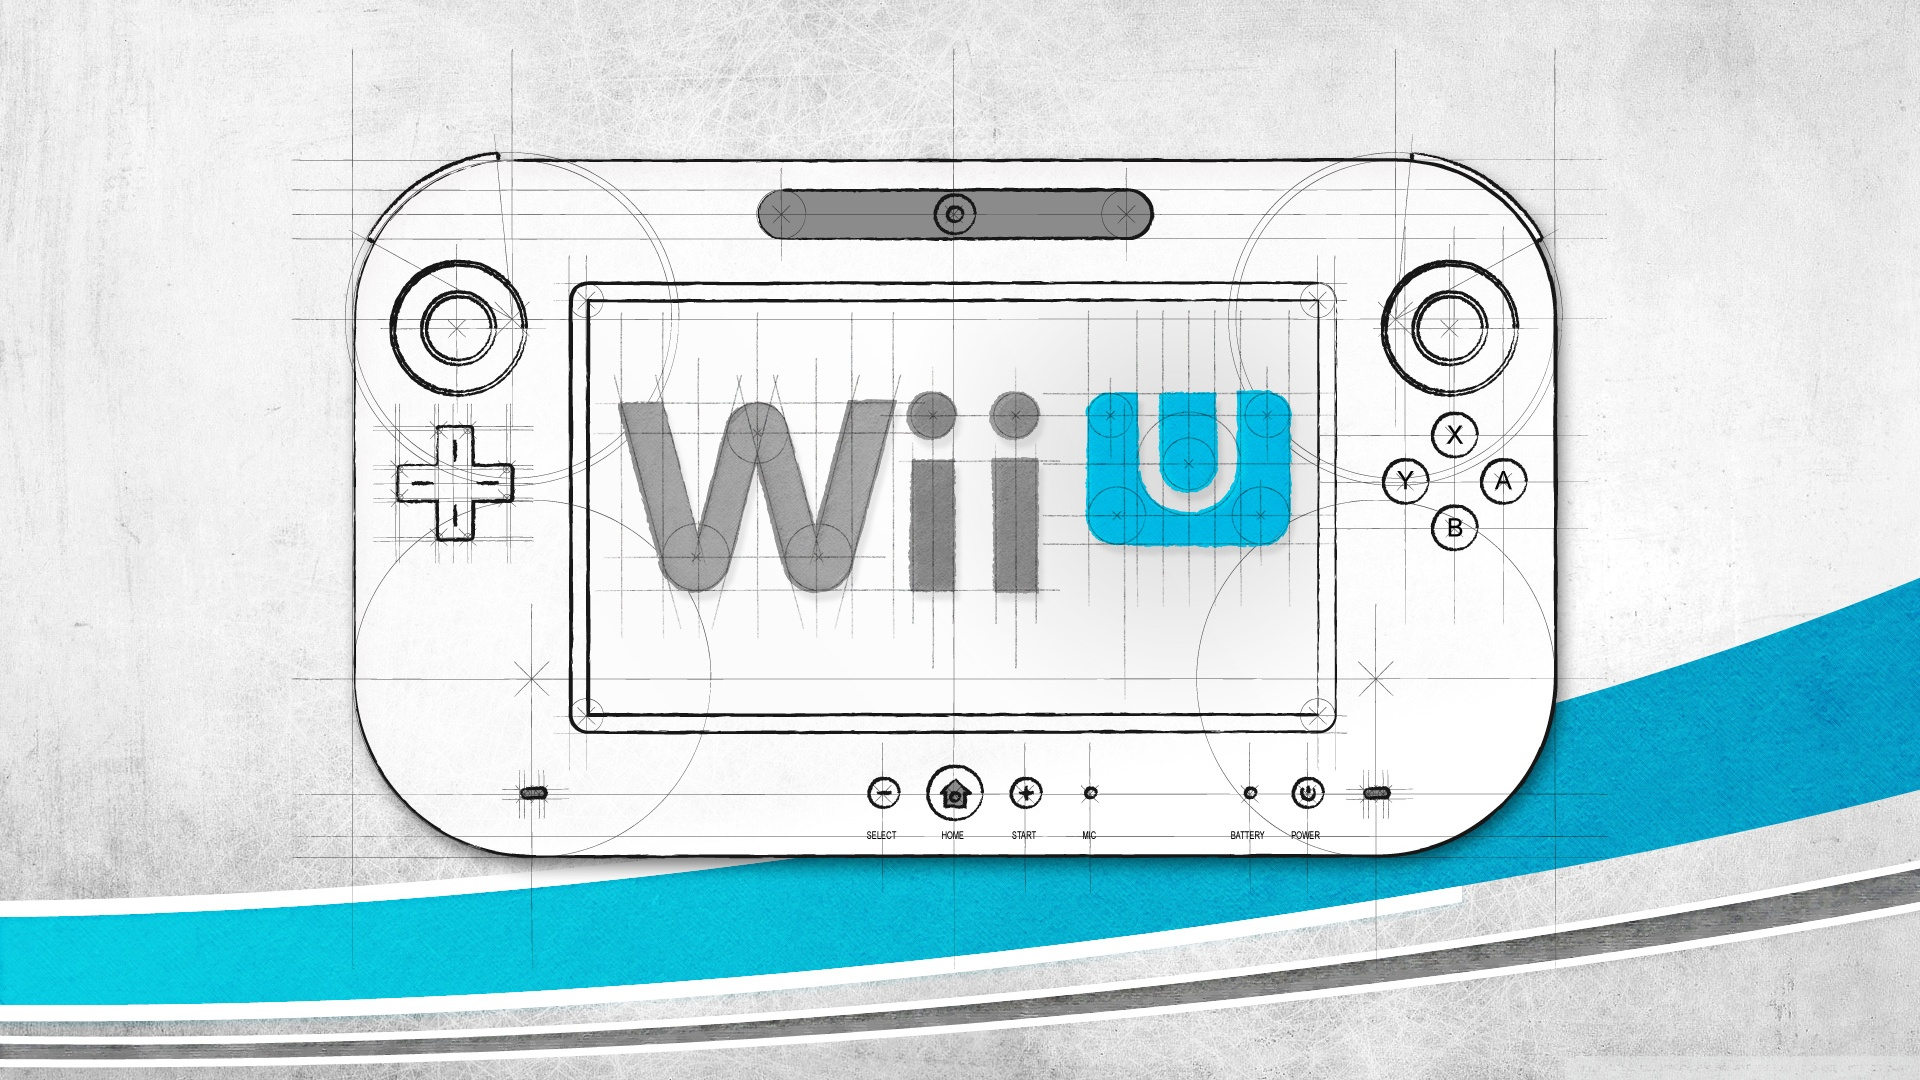 nintendo_wii_u-wallpaper-1920x1080